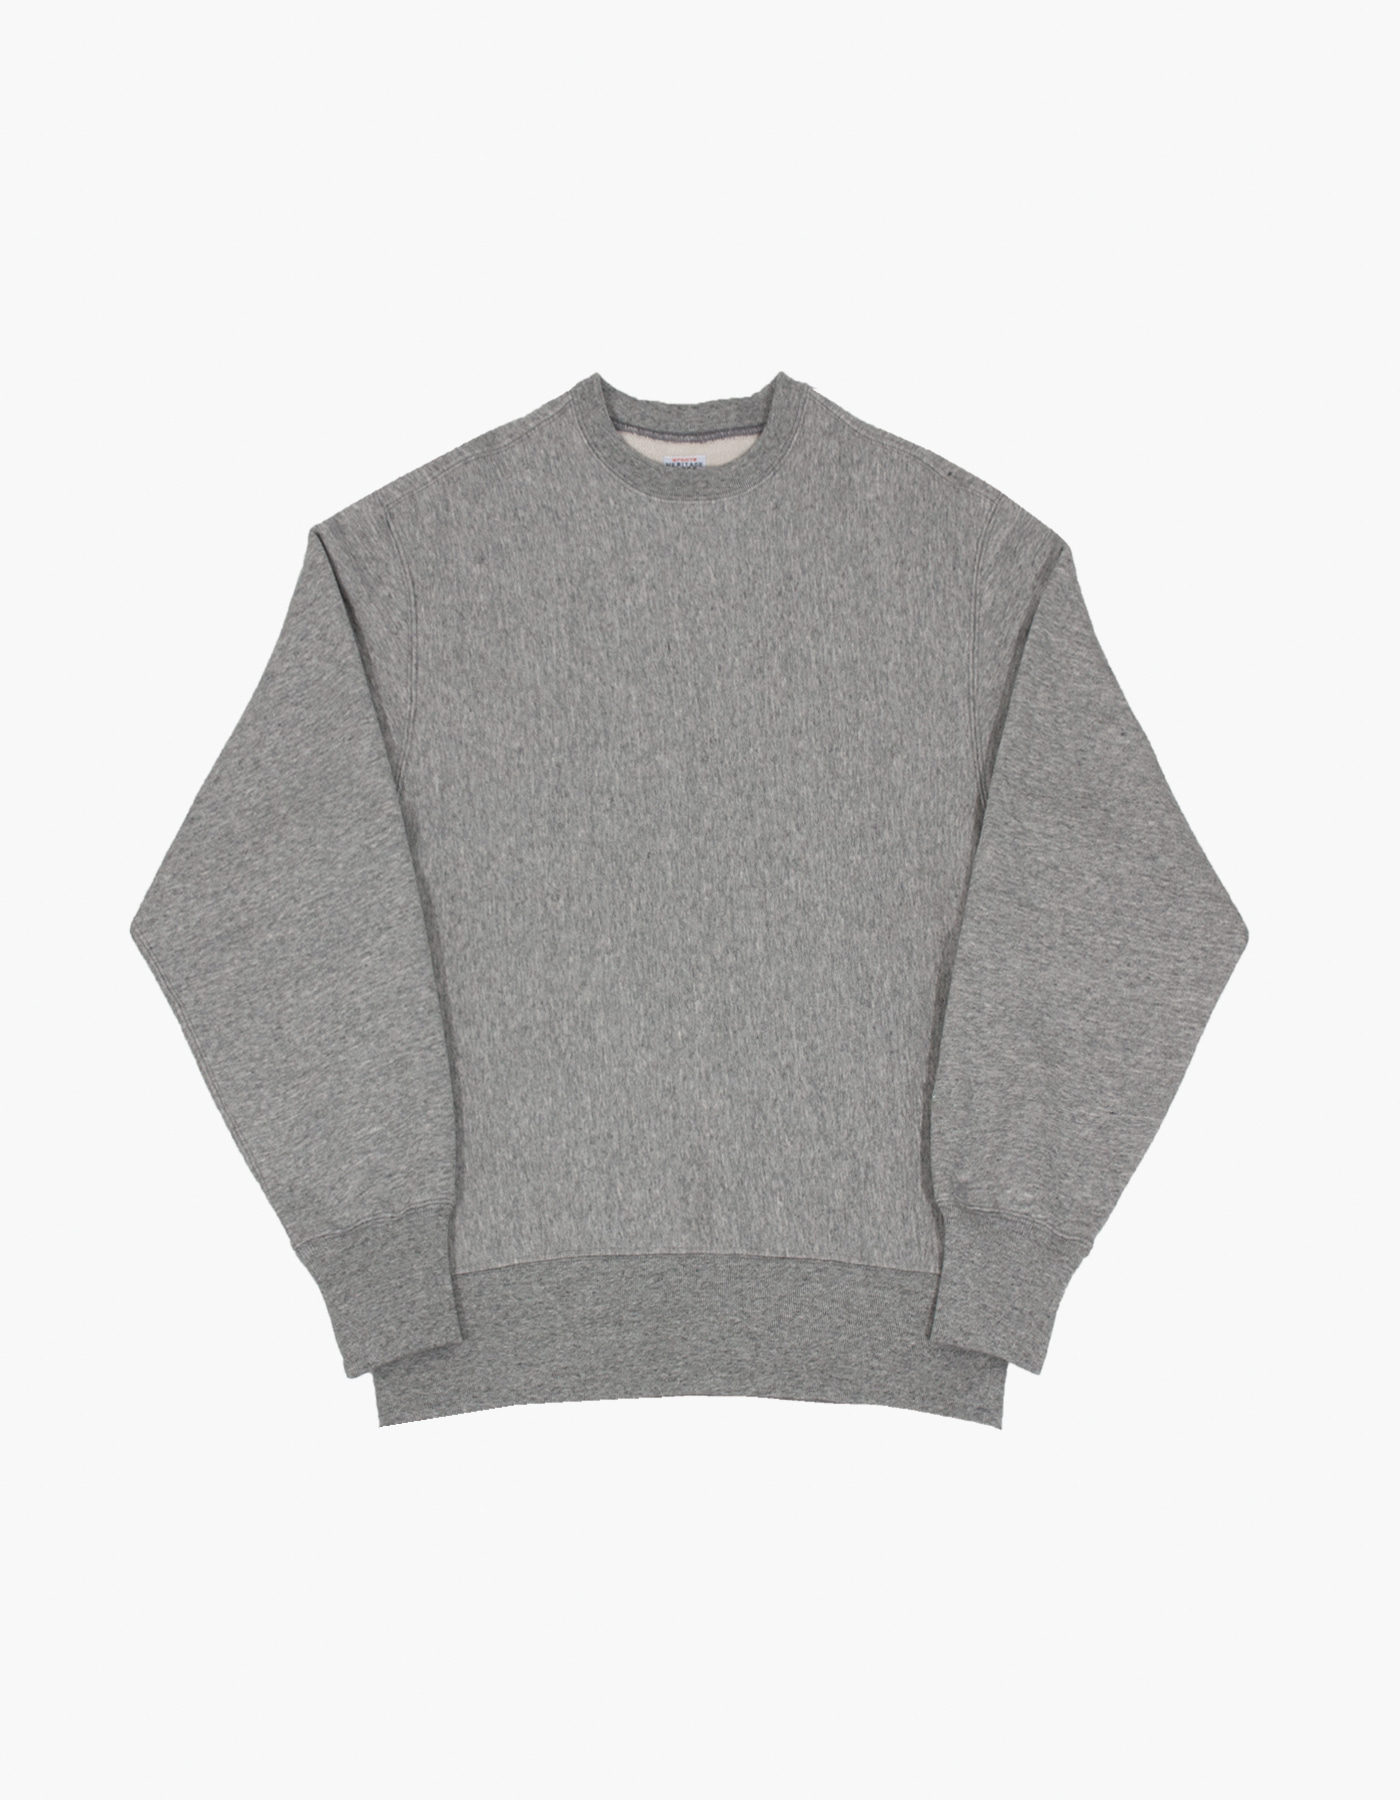 ACS CREWNECK / M.GREY